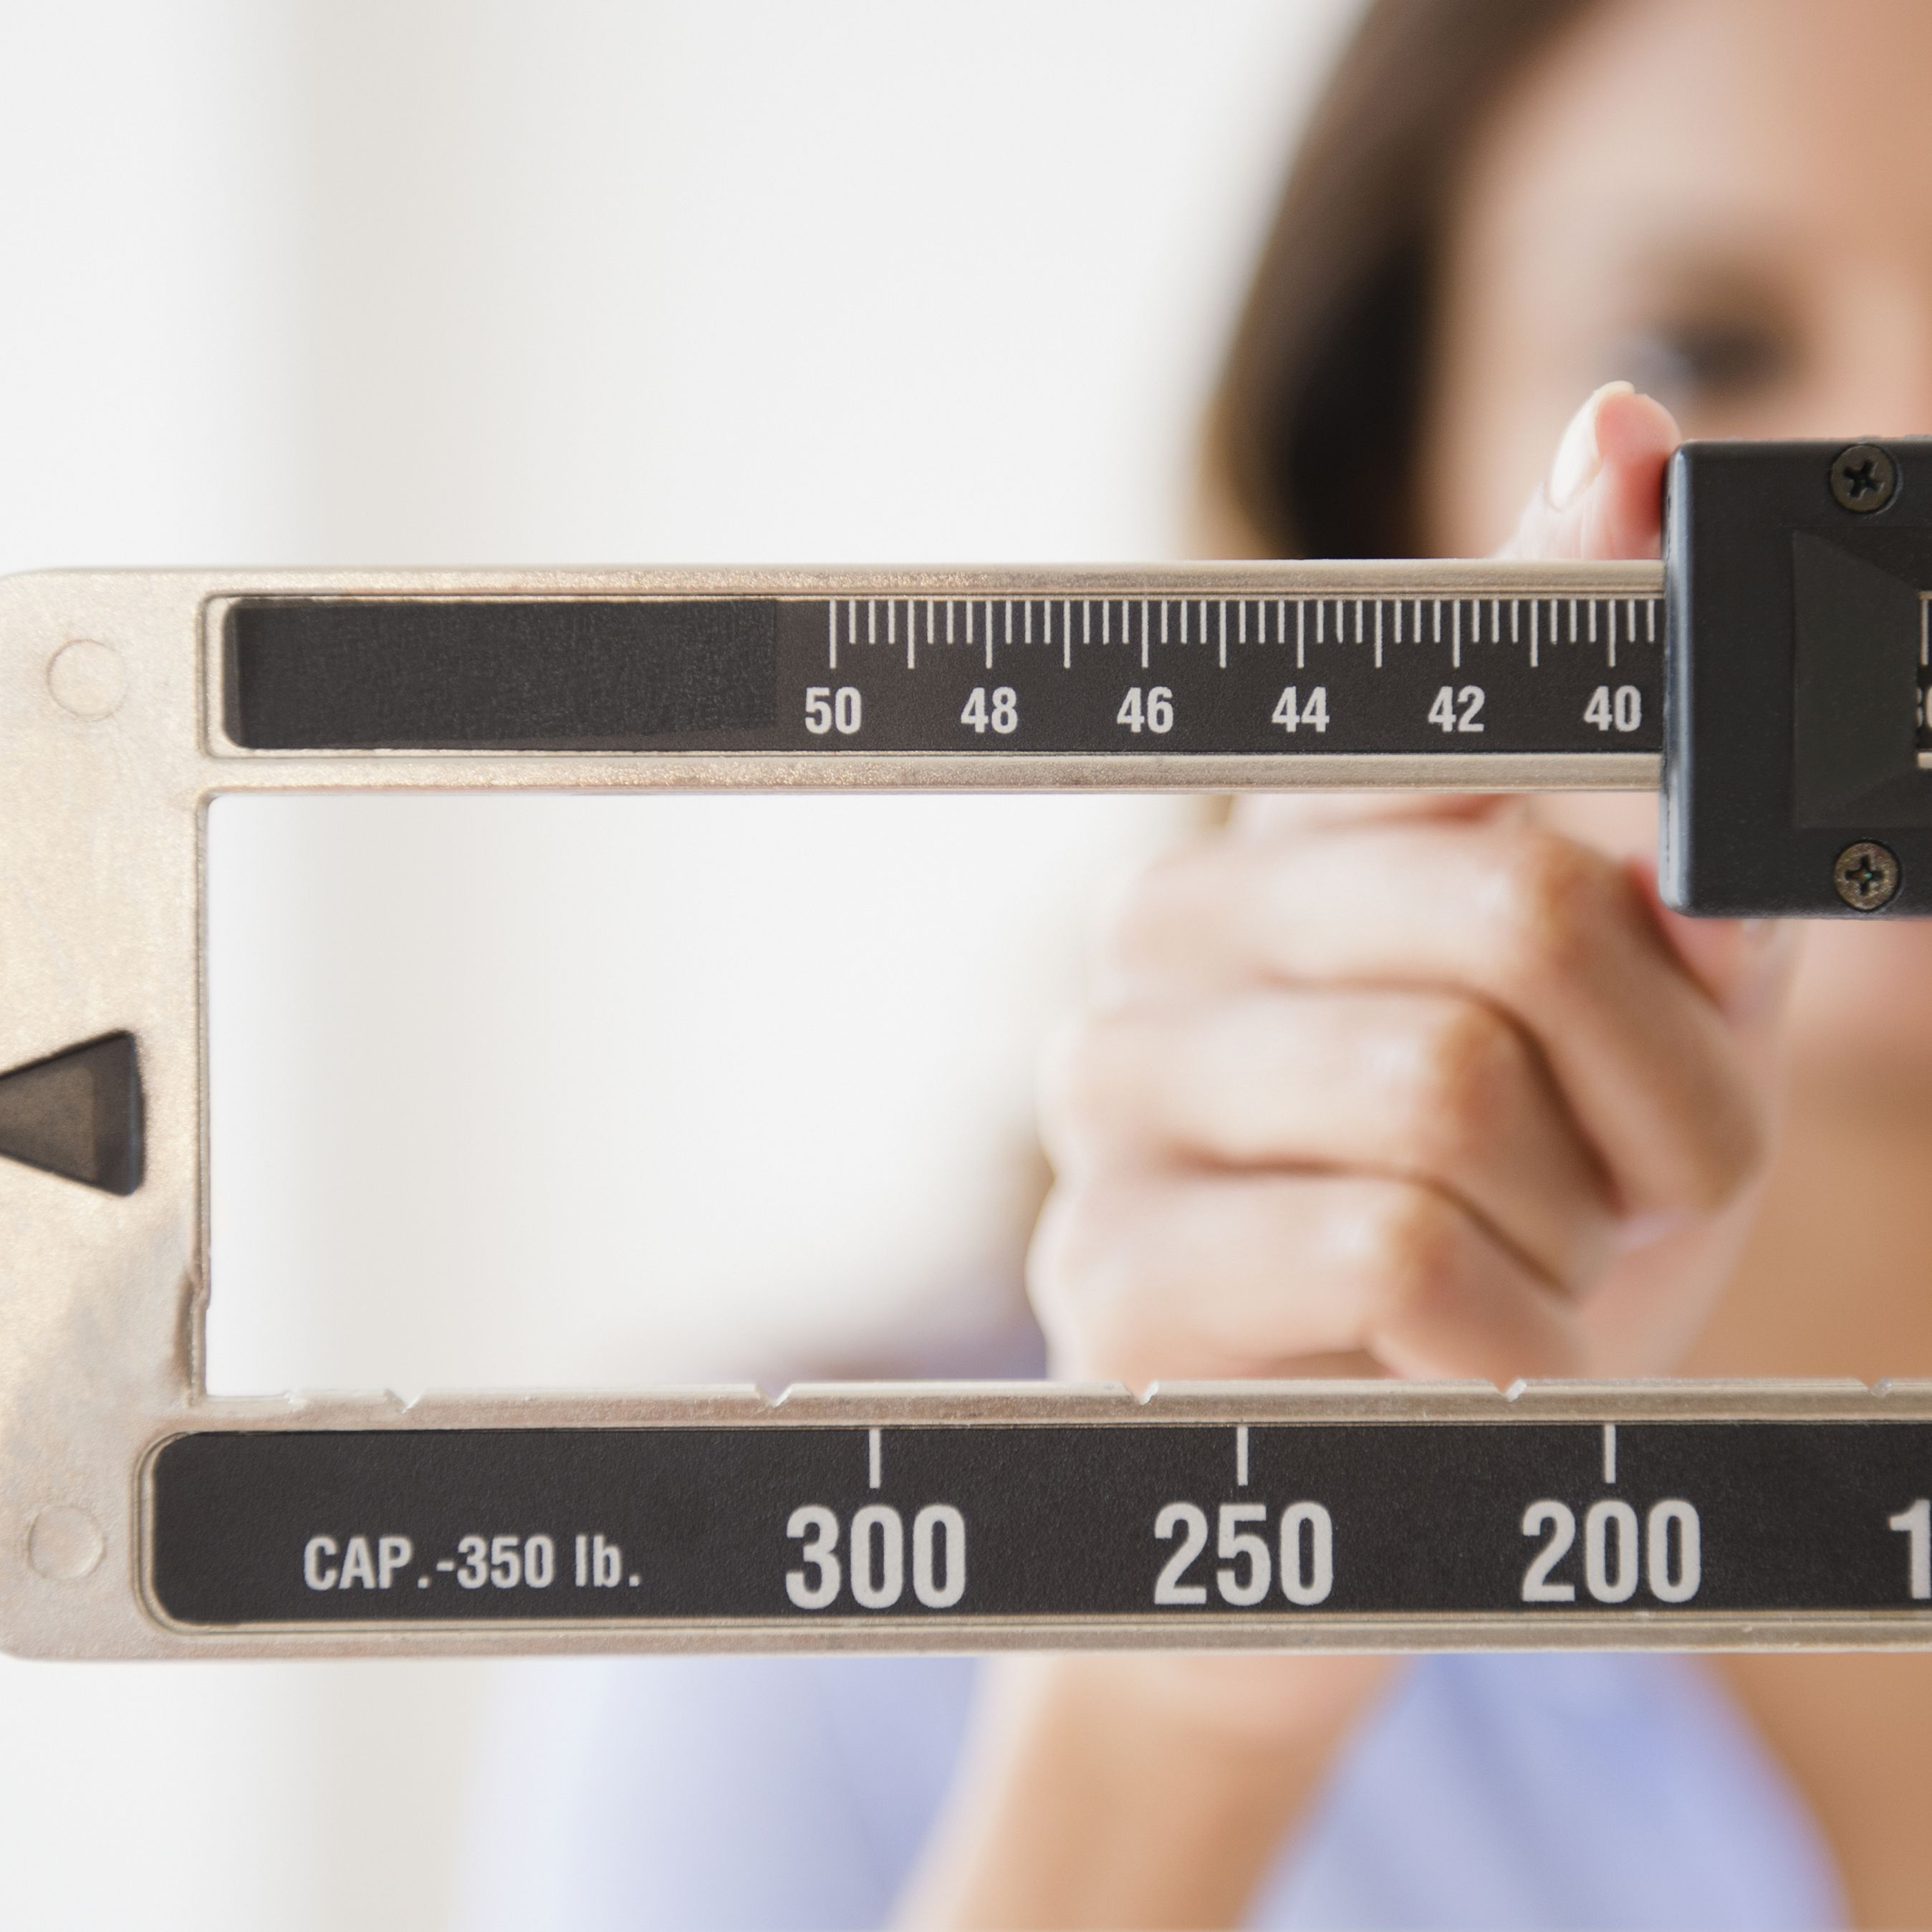 How to Gain Weight When You Have IBS